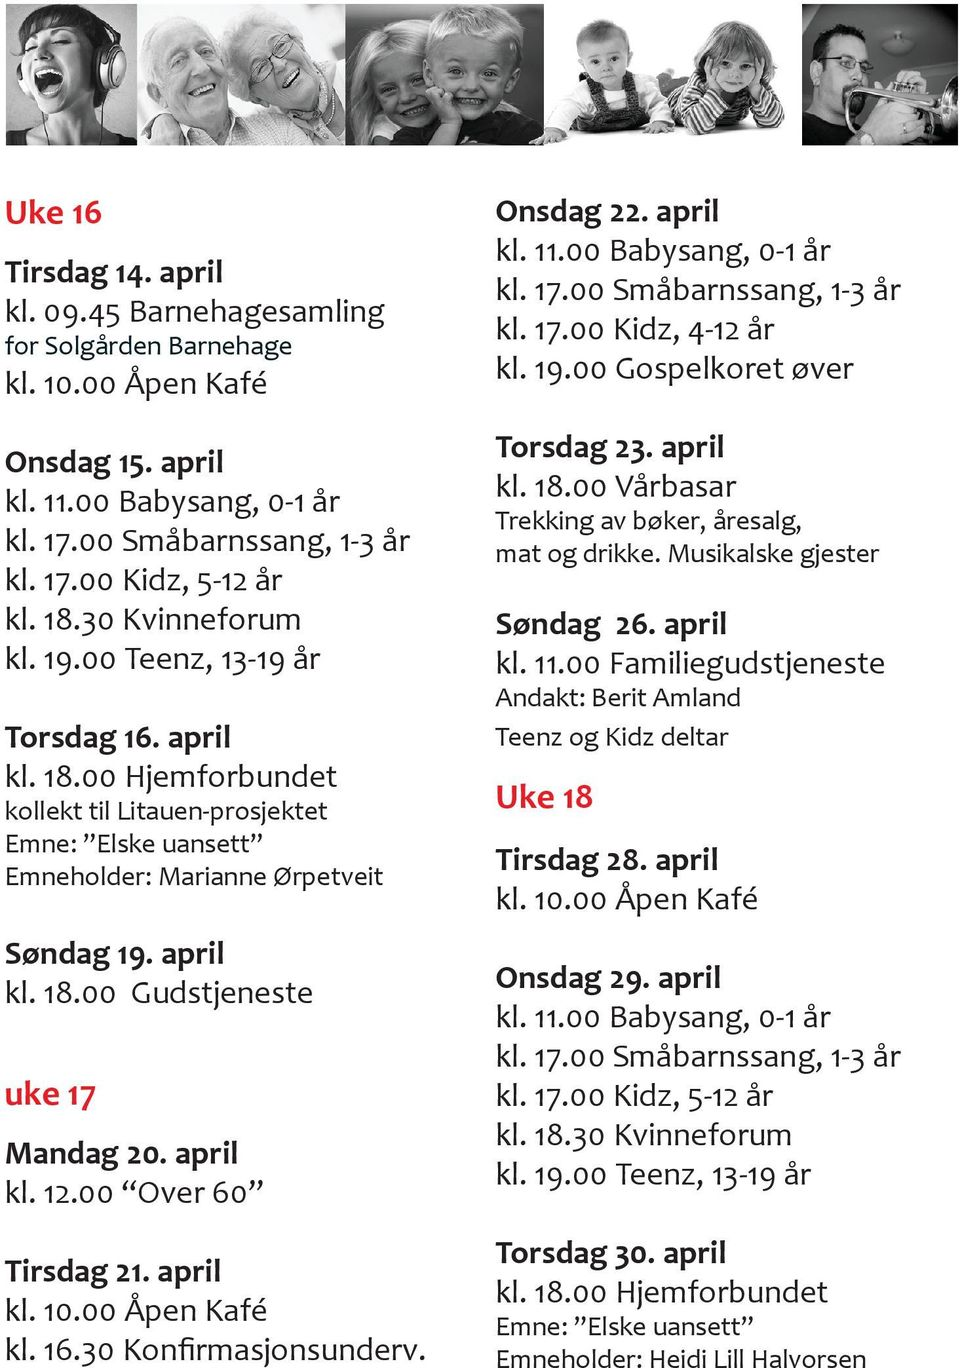 april kl. 12.00 Over 60 Tirsdag 21. april kl. 16.30 Konfirmasjonsunderv. Onsdag 22. april kl. 17.00 Kidz, 4-12 år kl. 19.00 Gospelkoret øver Torsdag 23. april kl. 18.